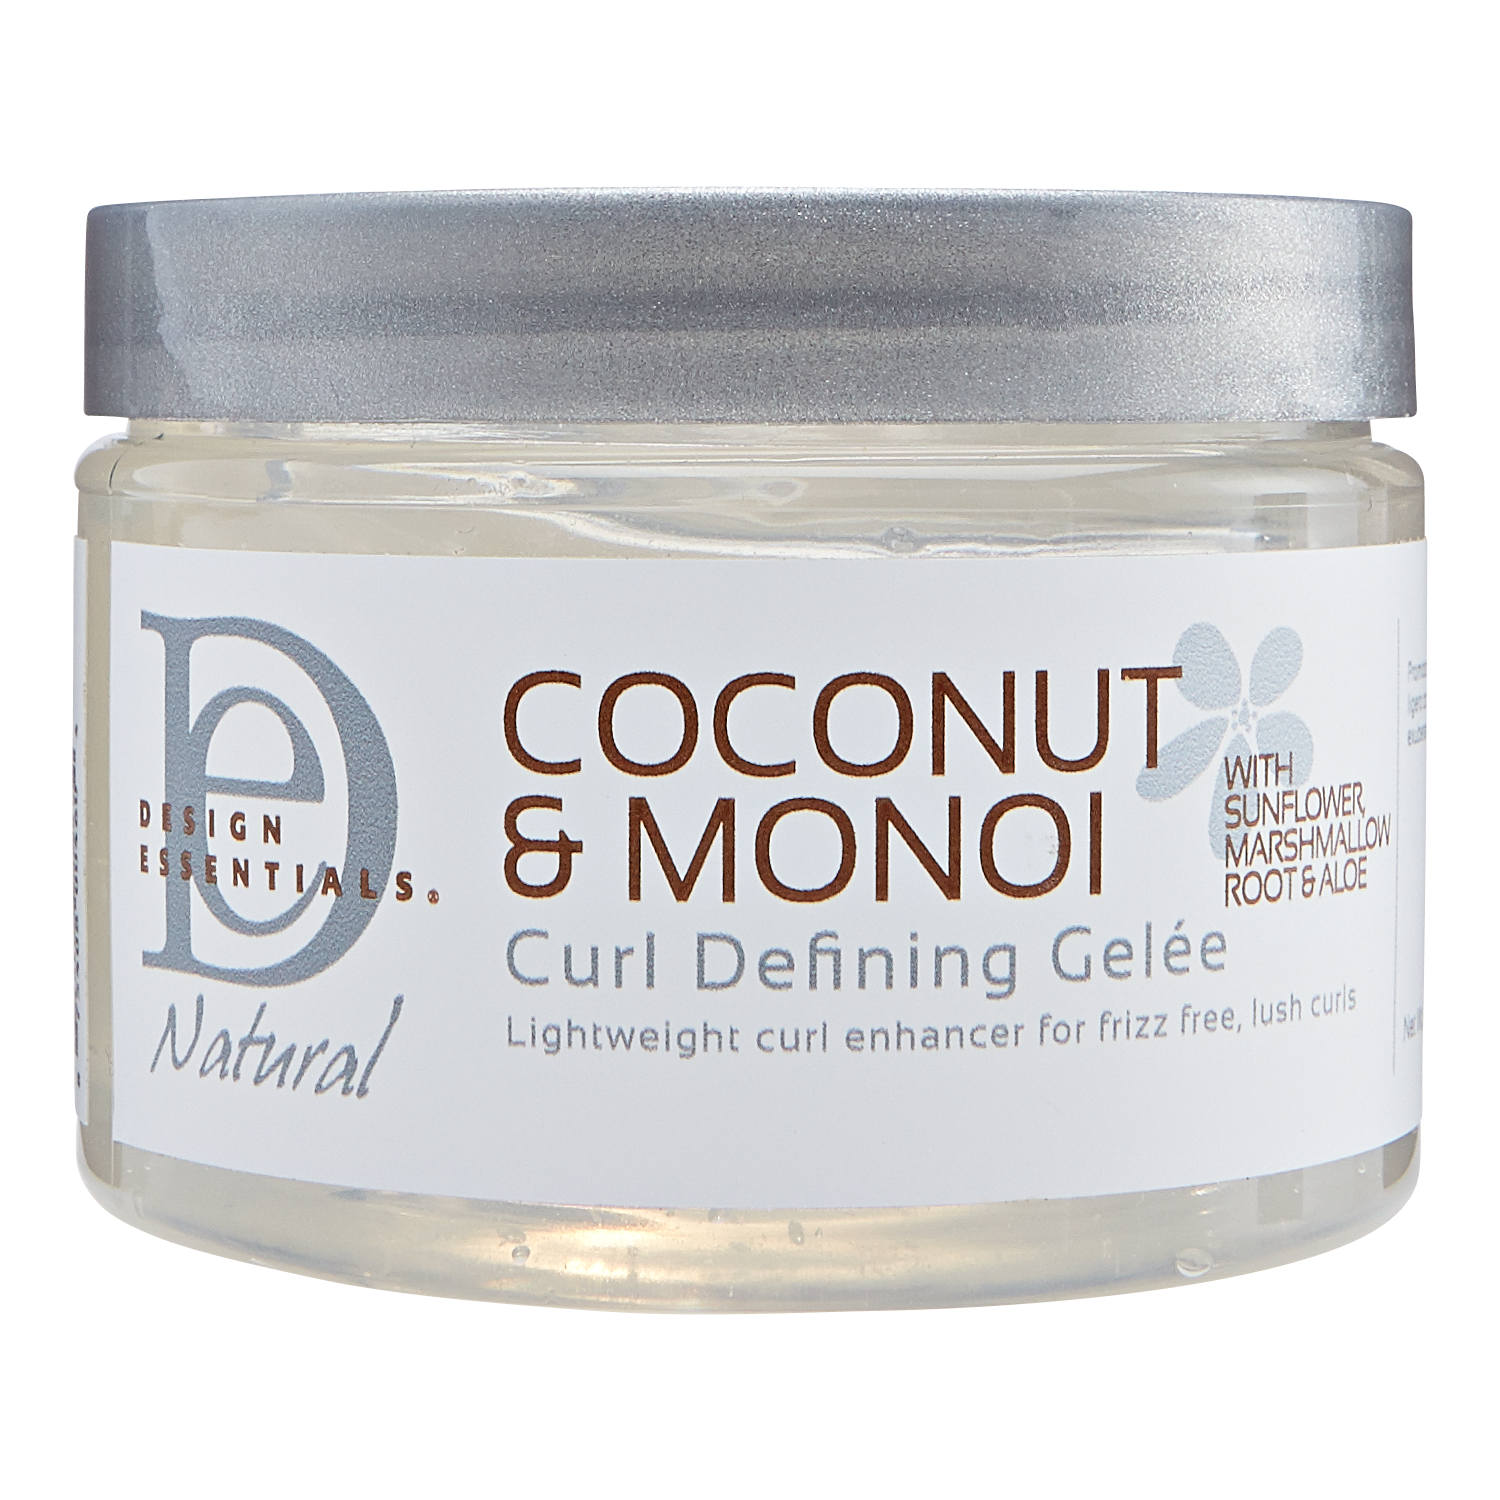 Design Essentials Natural Coconut and Monoi Curl Defining Gelee